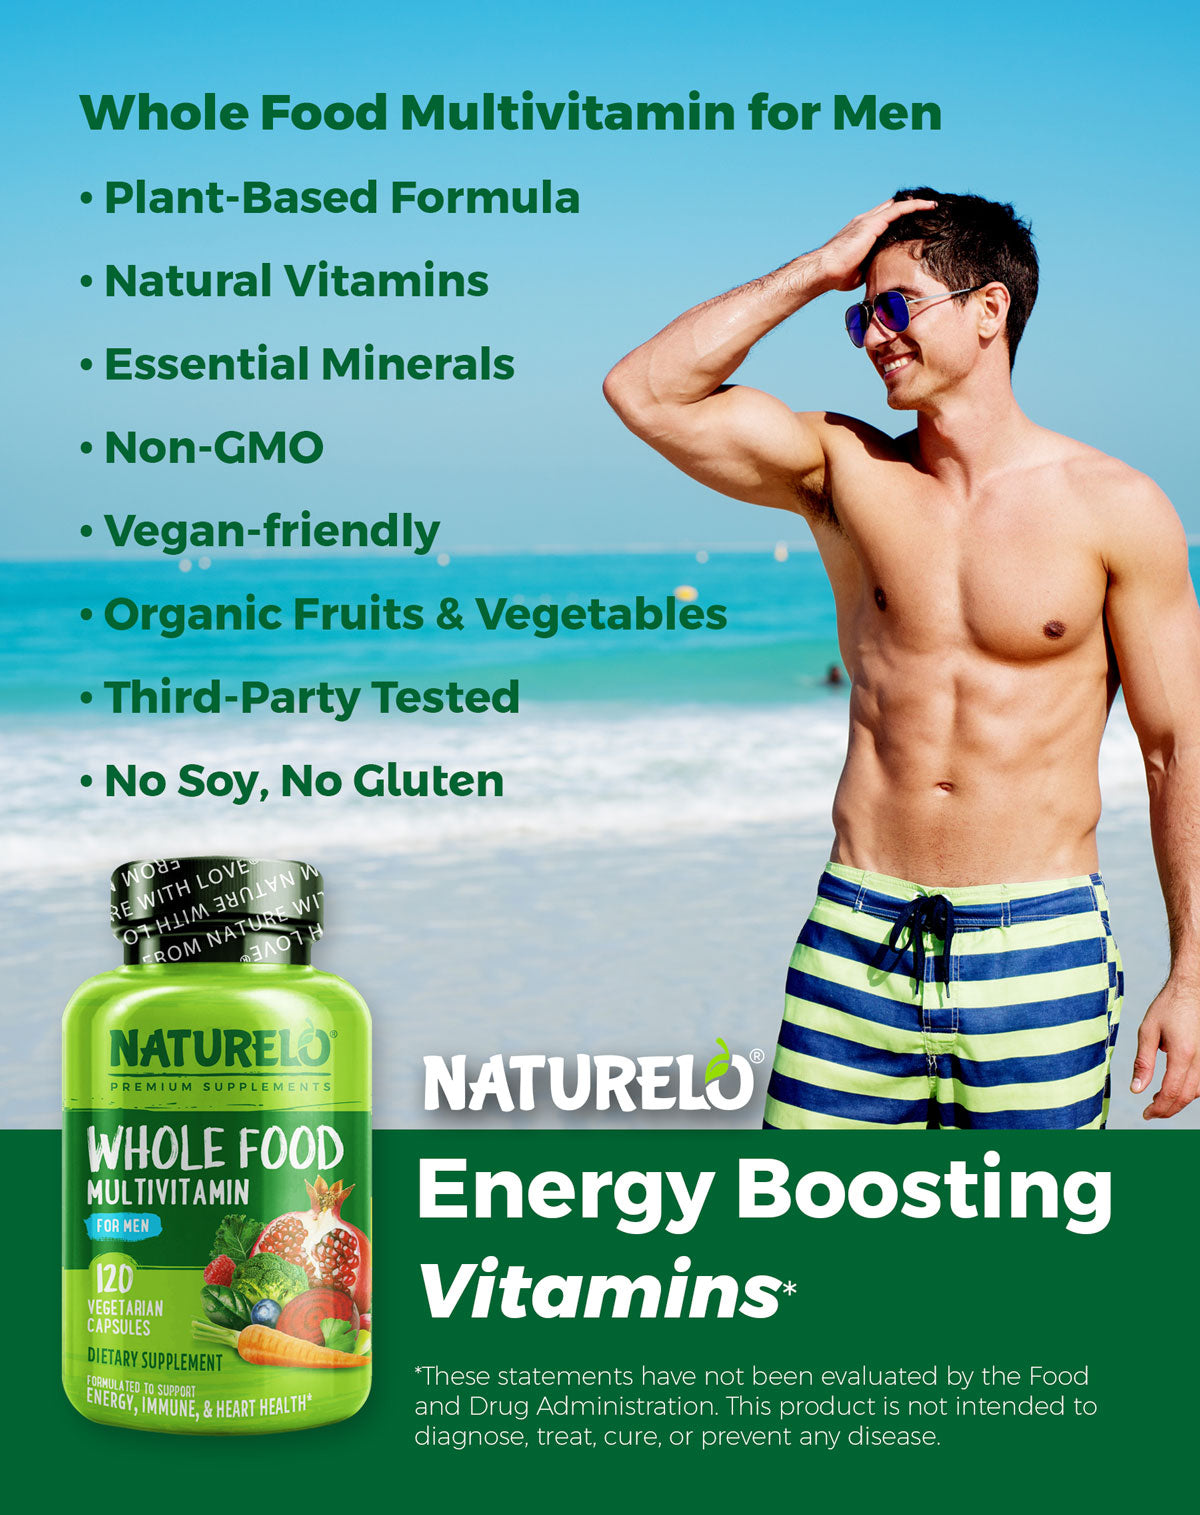 Whole Food Multivitamin for Men Features